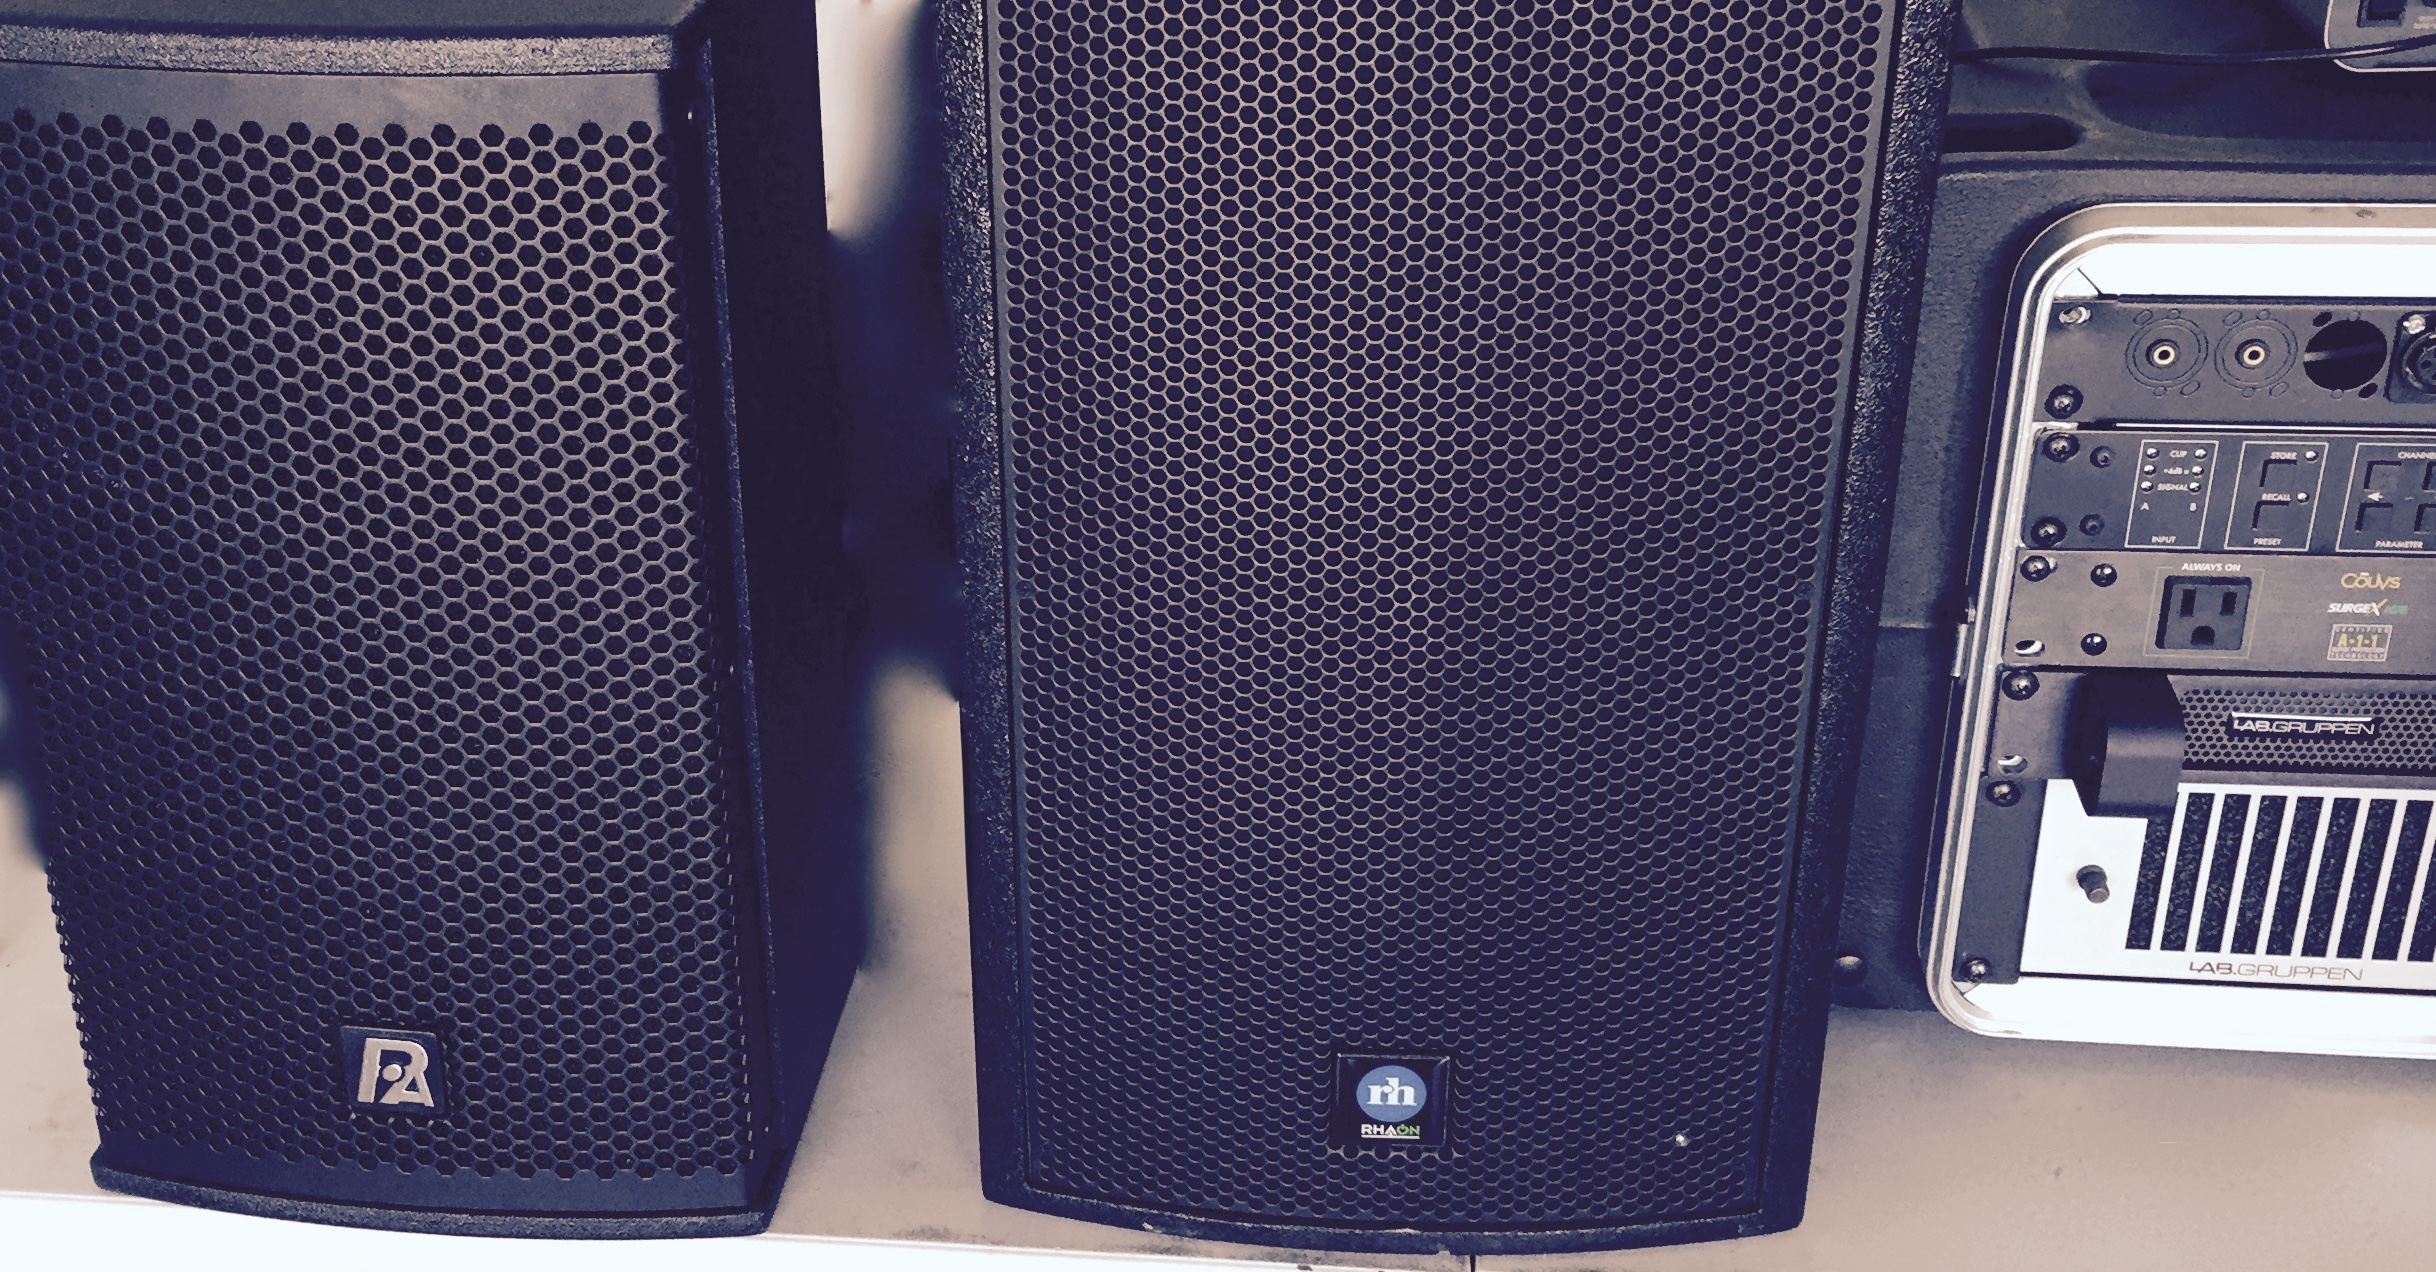 RH and P Audio Speaker Test